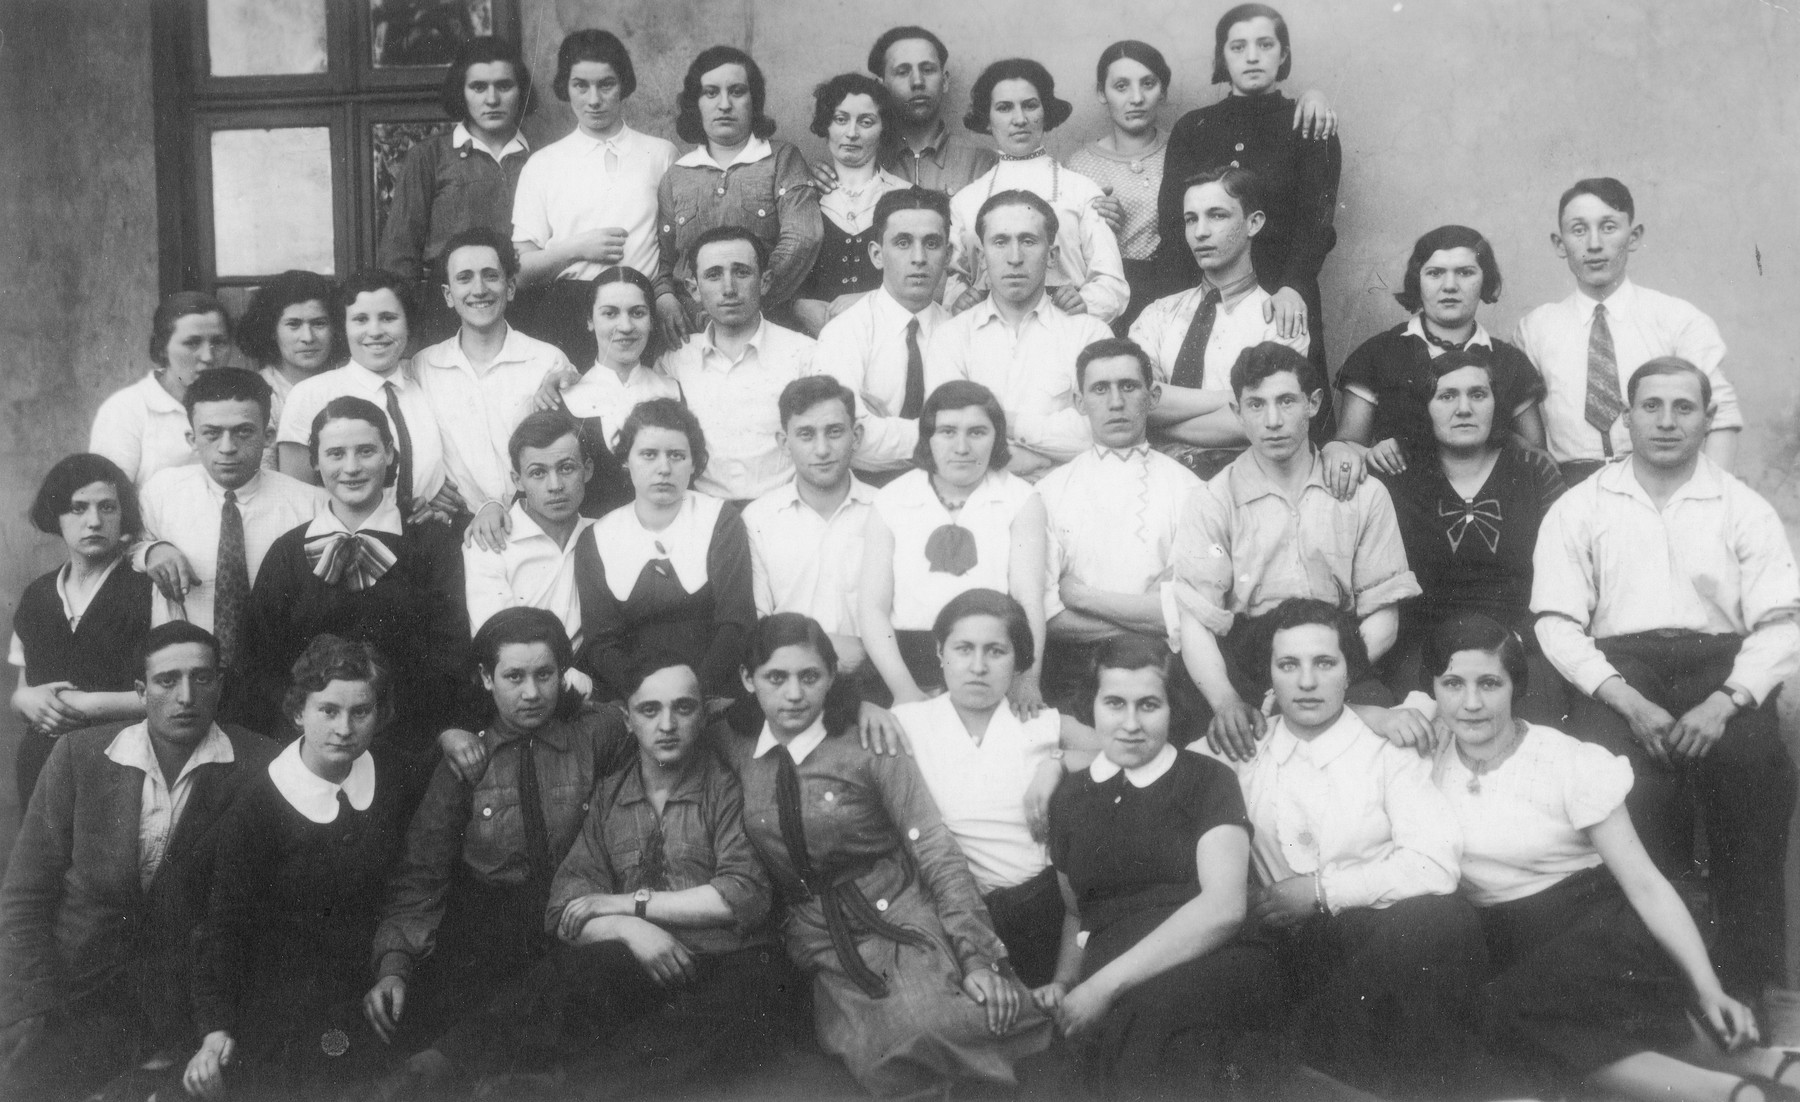 Portrait of Zionist youth in Dabrowa., members of either Hechalutz or Shomer Hatzair.